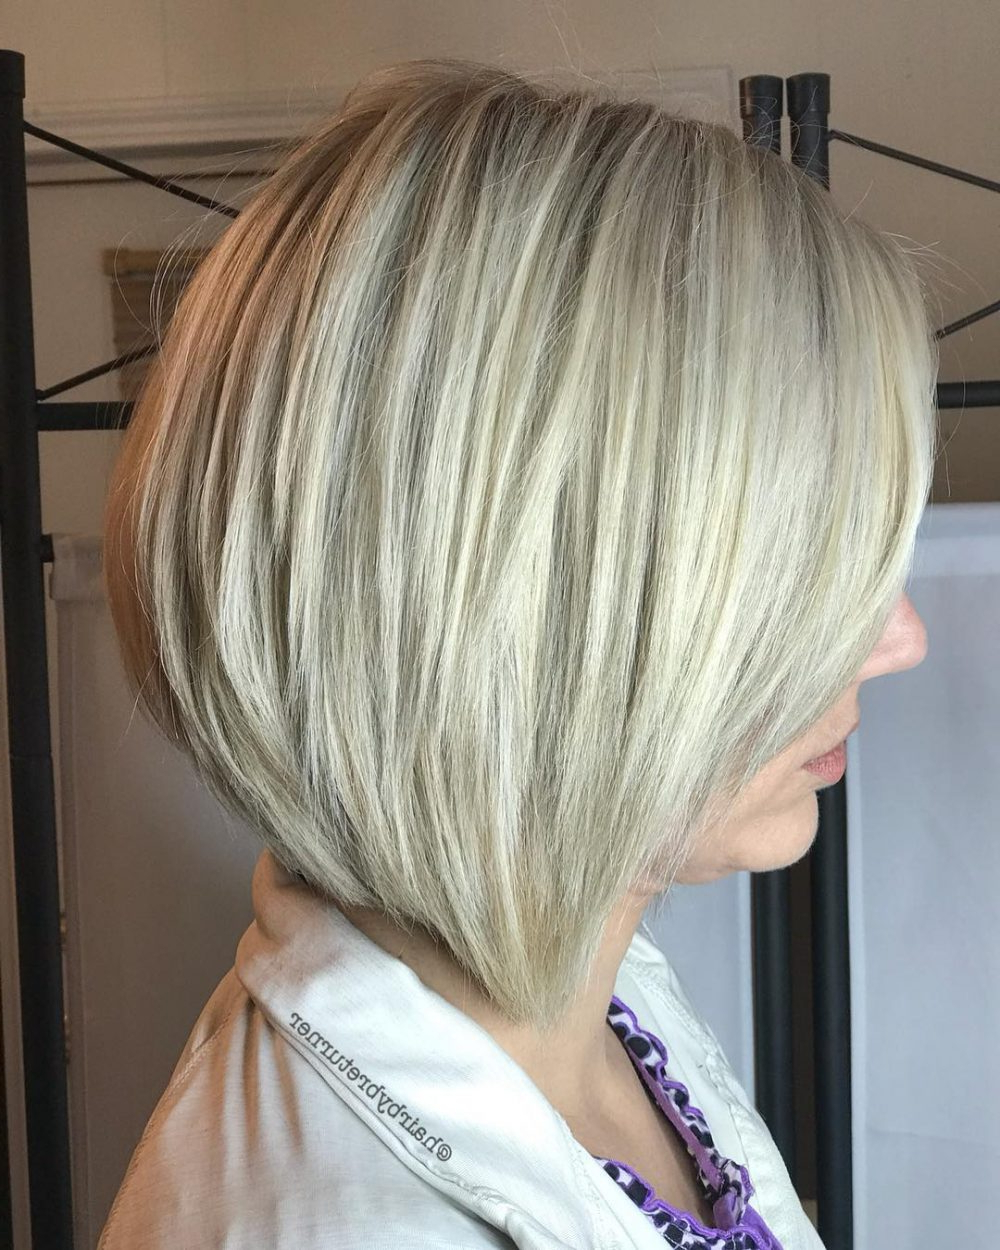 Well Known Medium Haircuts For Women In Their 30S For 42 Sexiest Short Hairstyles For Women Over 40 In 2019 (Gallery 13 of 20)